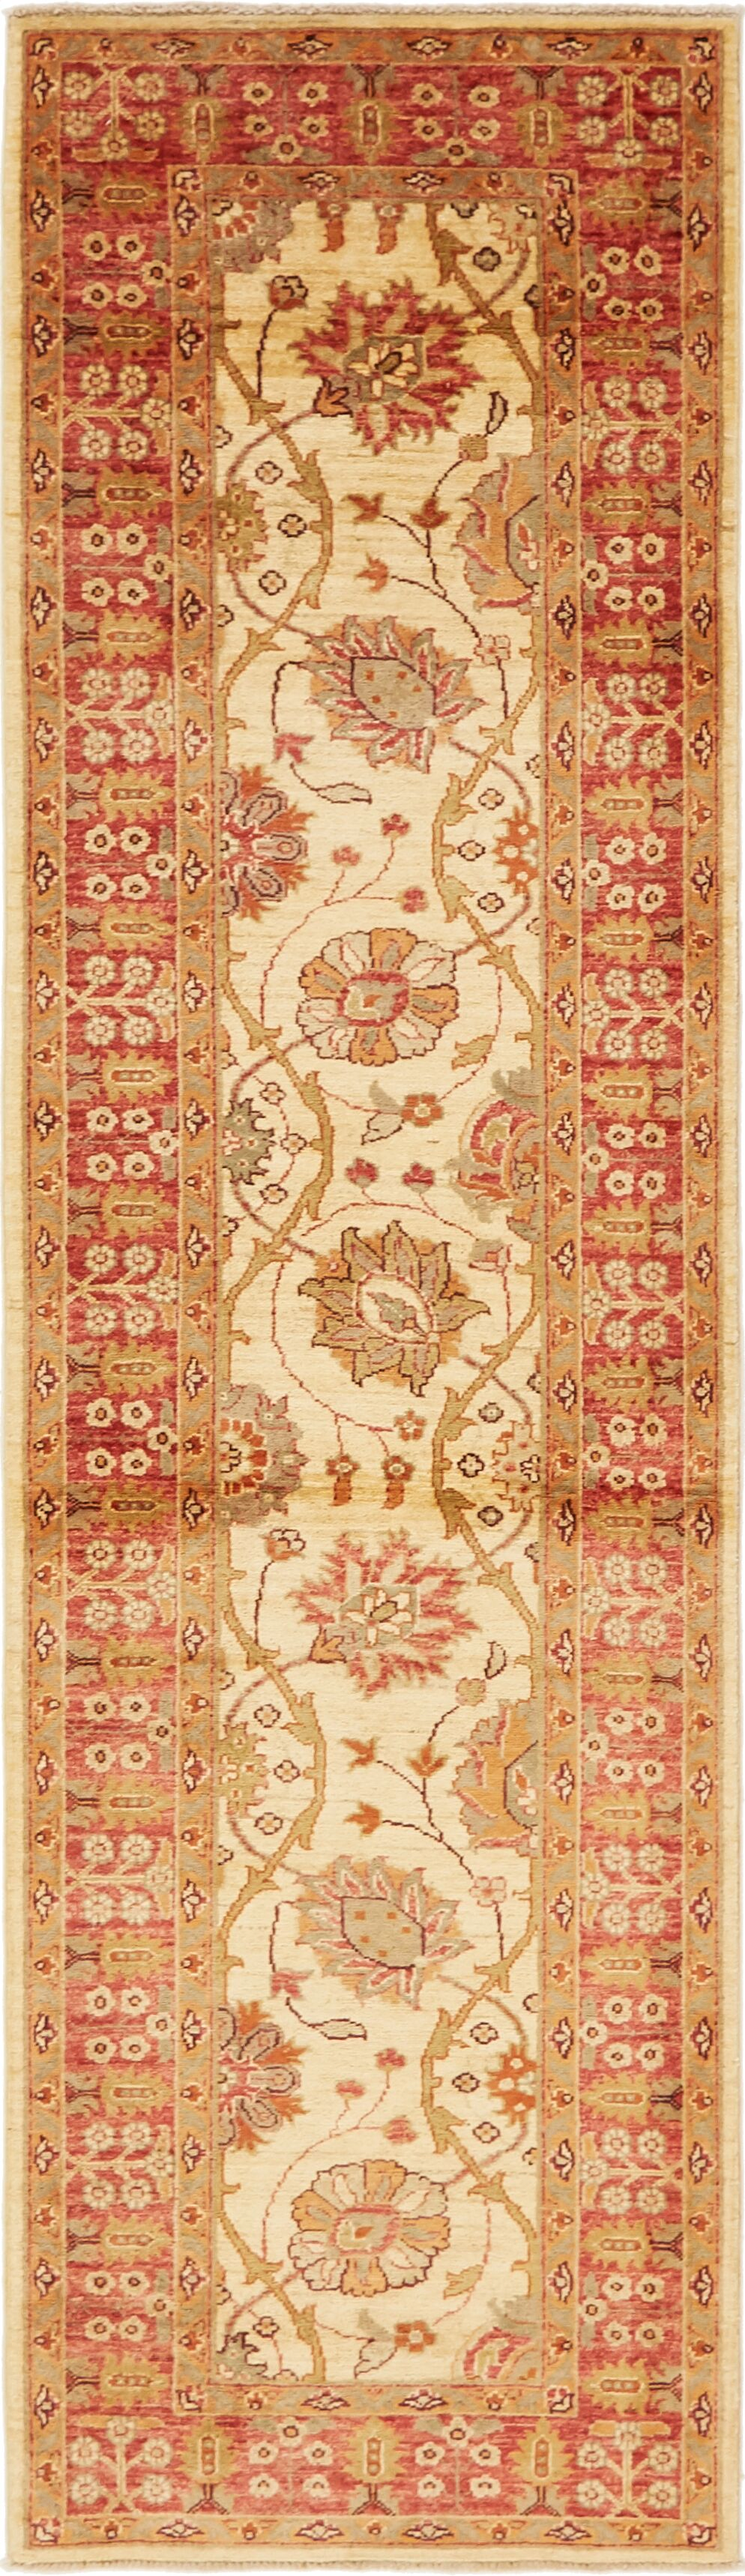 One-of-a-Kind Huntingdon Runner Hand-Knotted  2'6